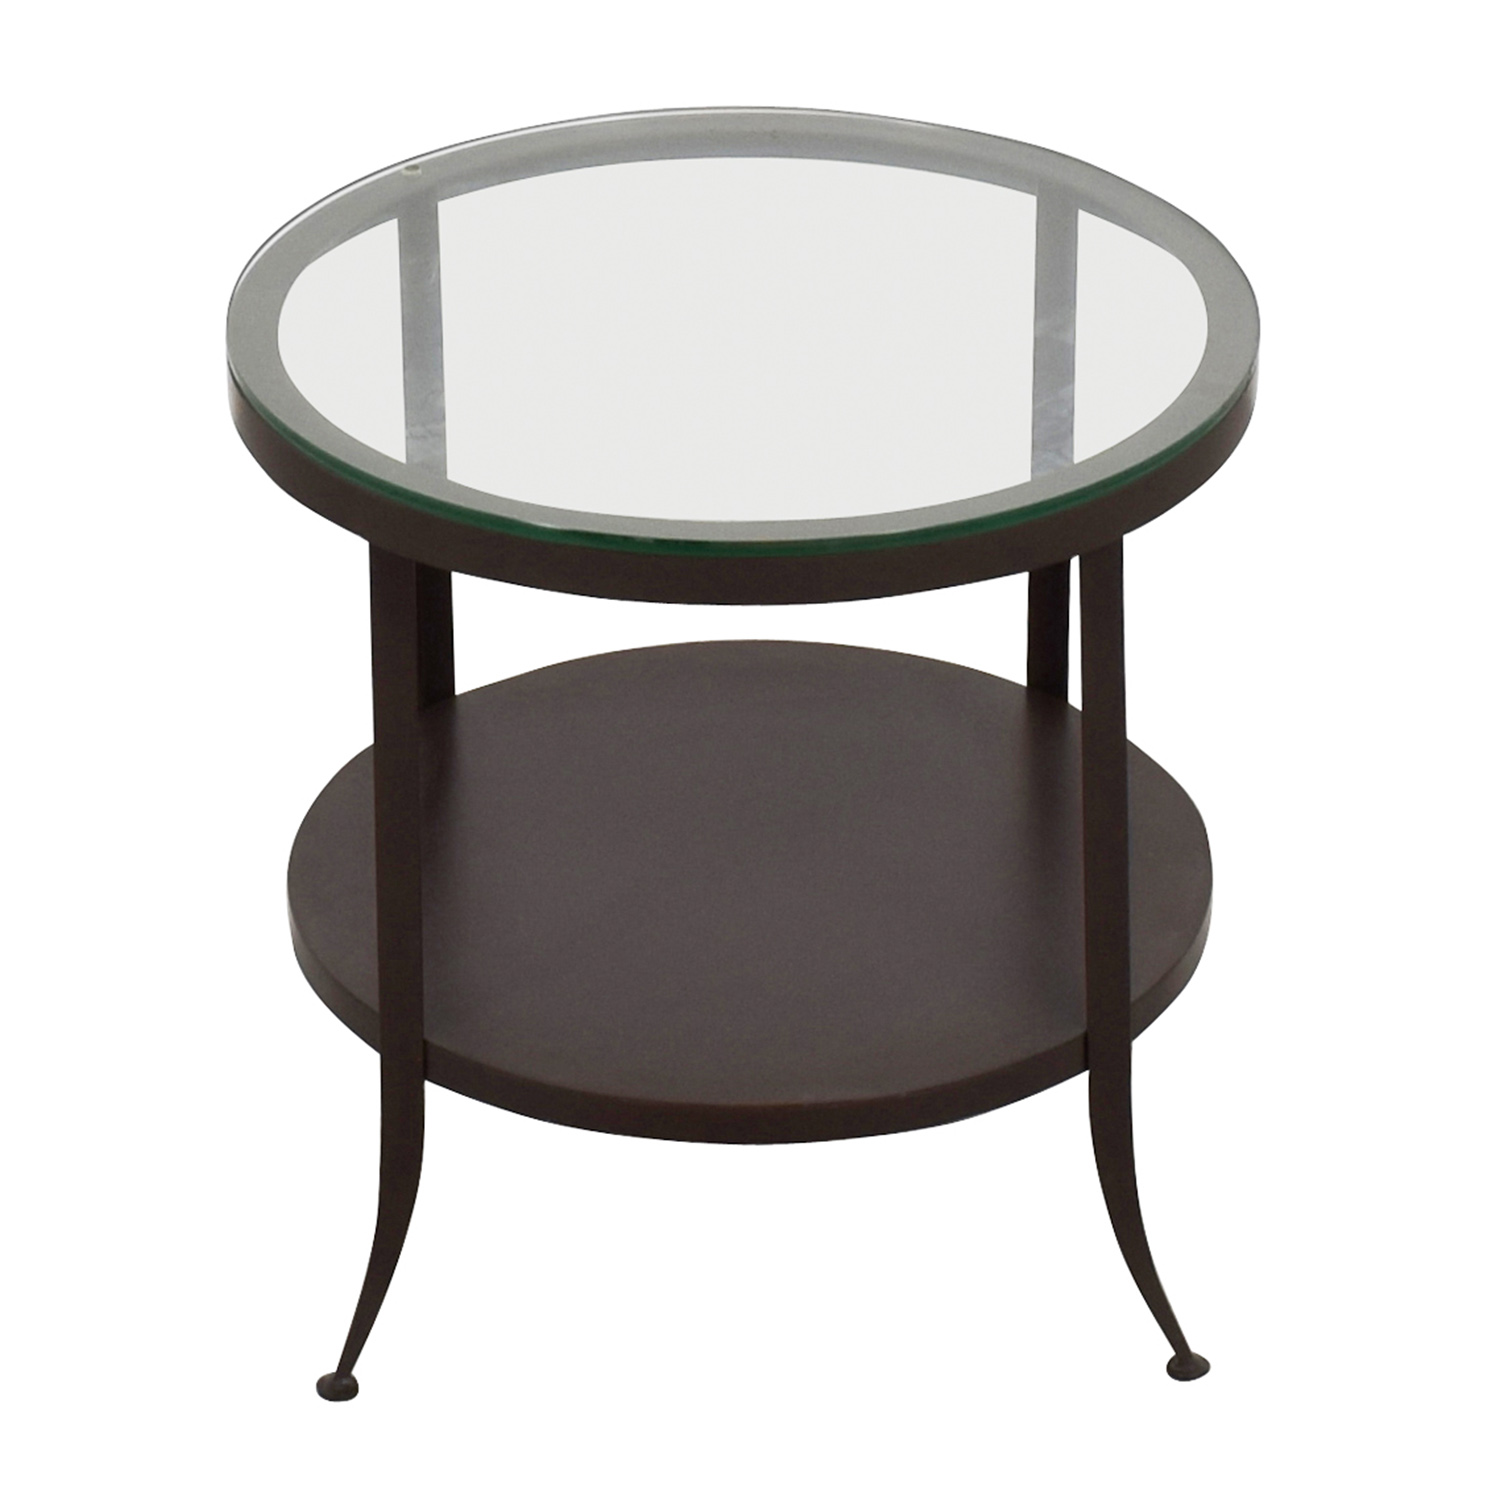 buy Crate and Barrel Crate & Barrel Round Glass Top End Table online